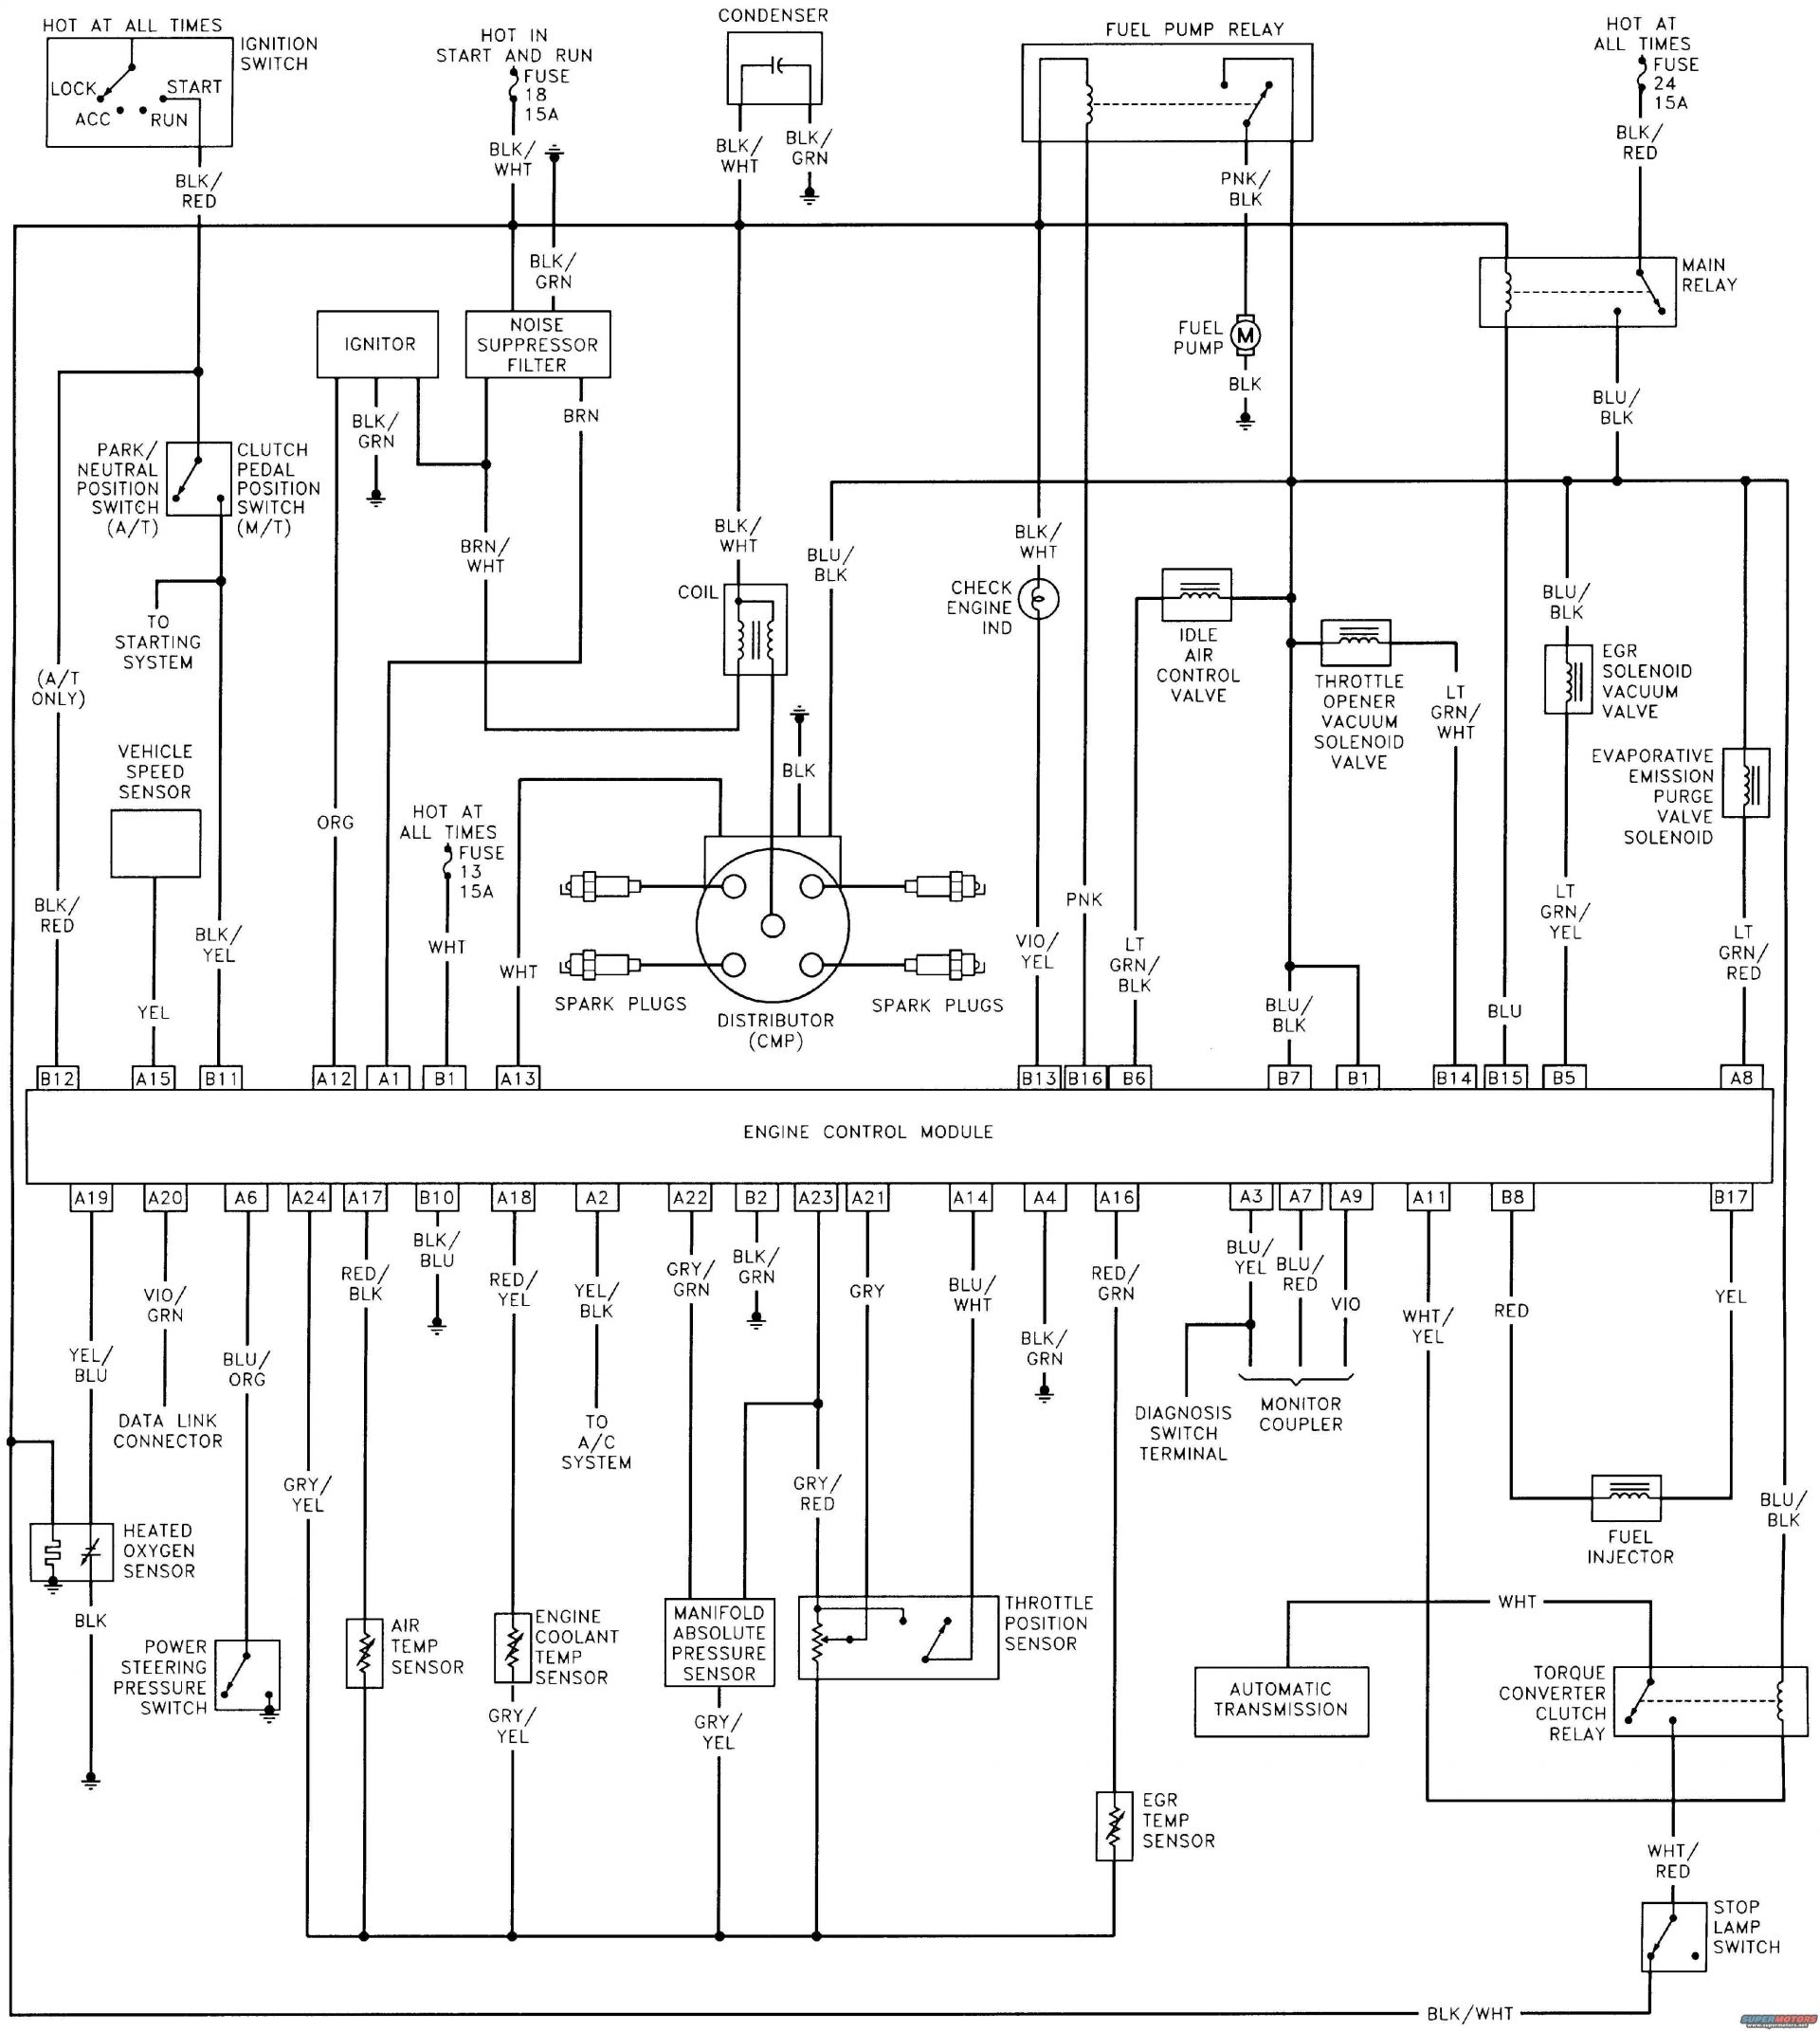 clark forklift ignition switch wiring diagram | free ... clark forklift ignition wiring harness schematic 56 chevy ignition wiring diagram schematic